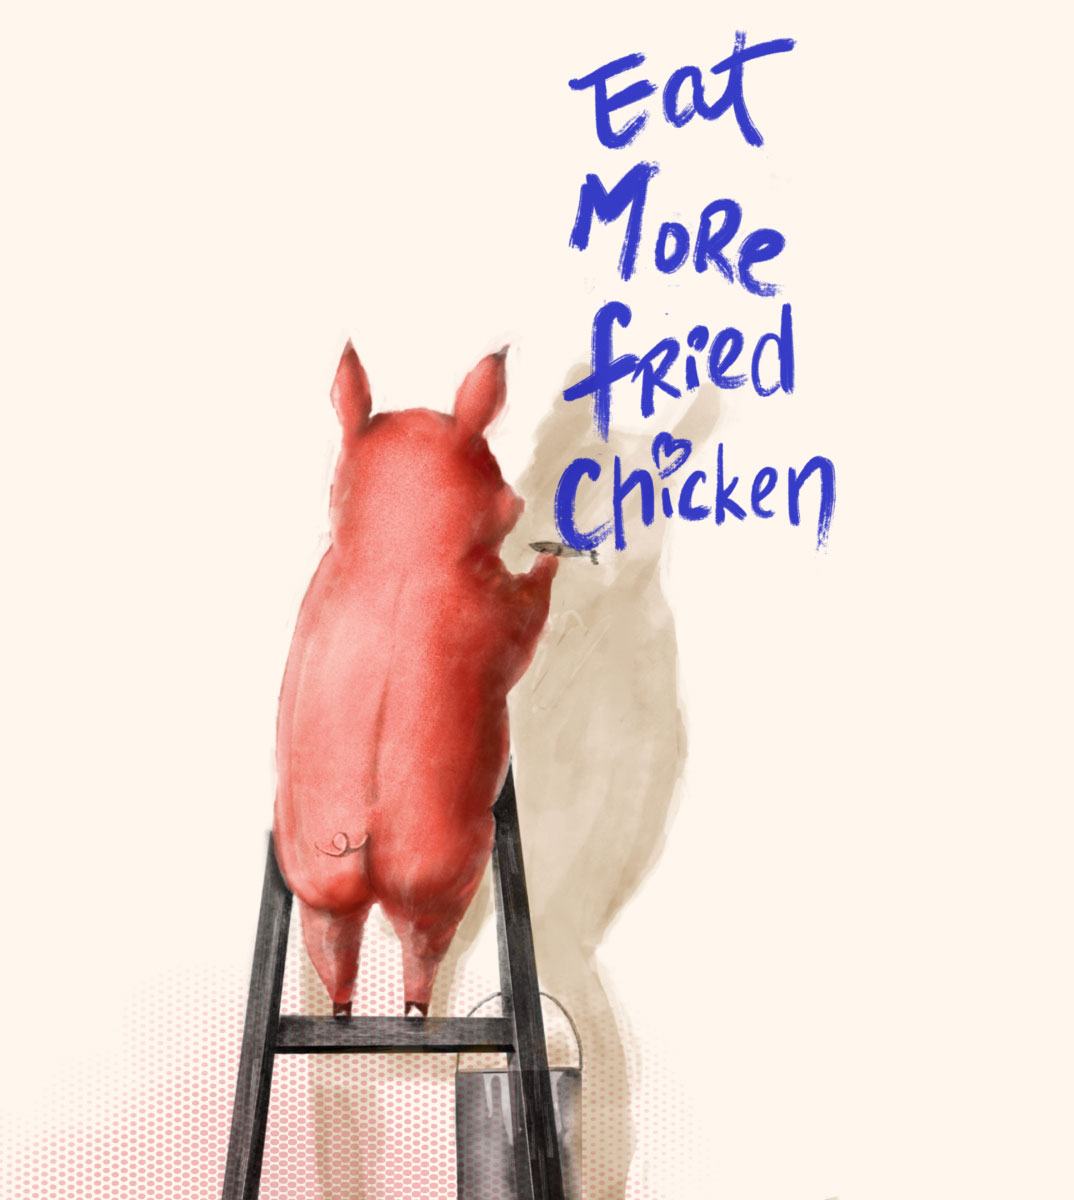 """Illustration of a pig writing """"Eat More Fried Chicken"""" on the wall with a blue paint brush"""